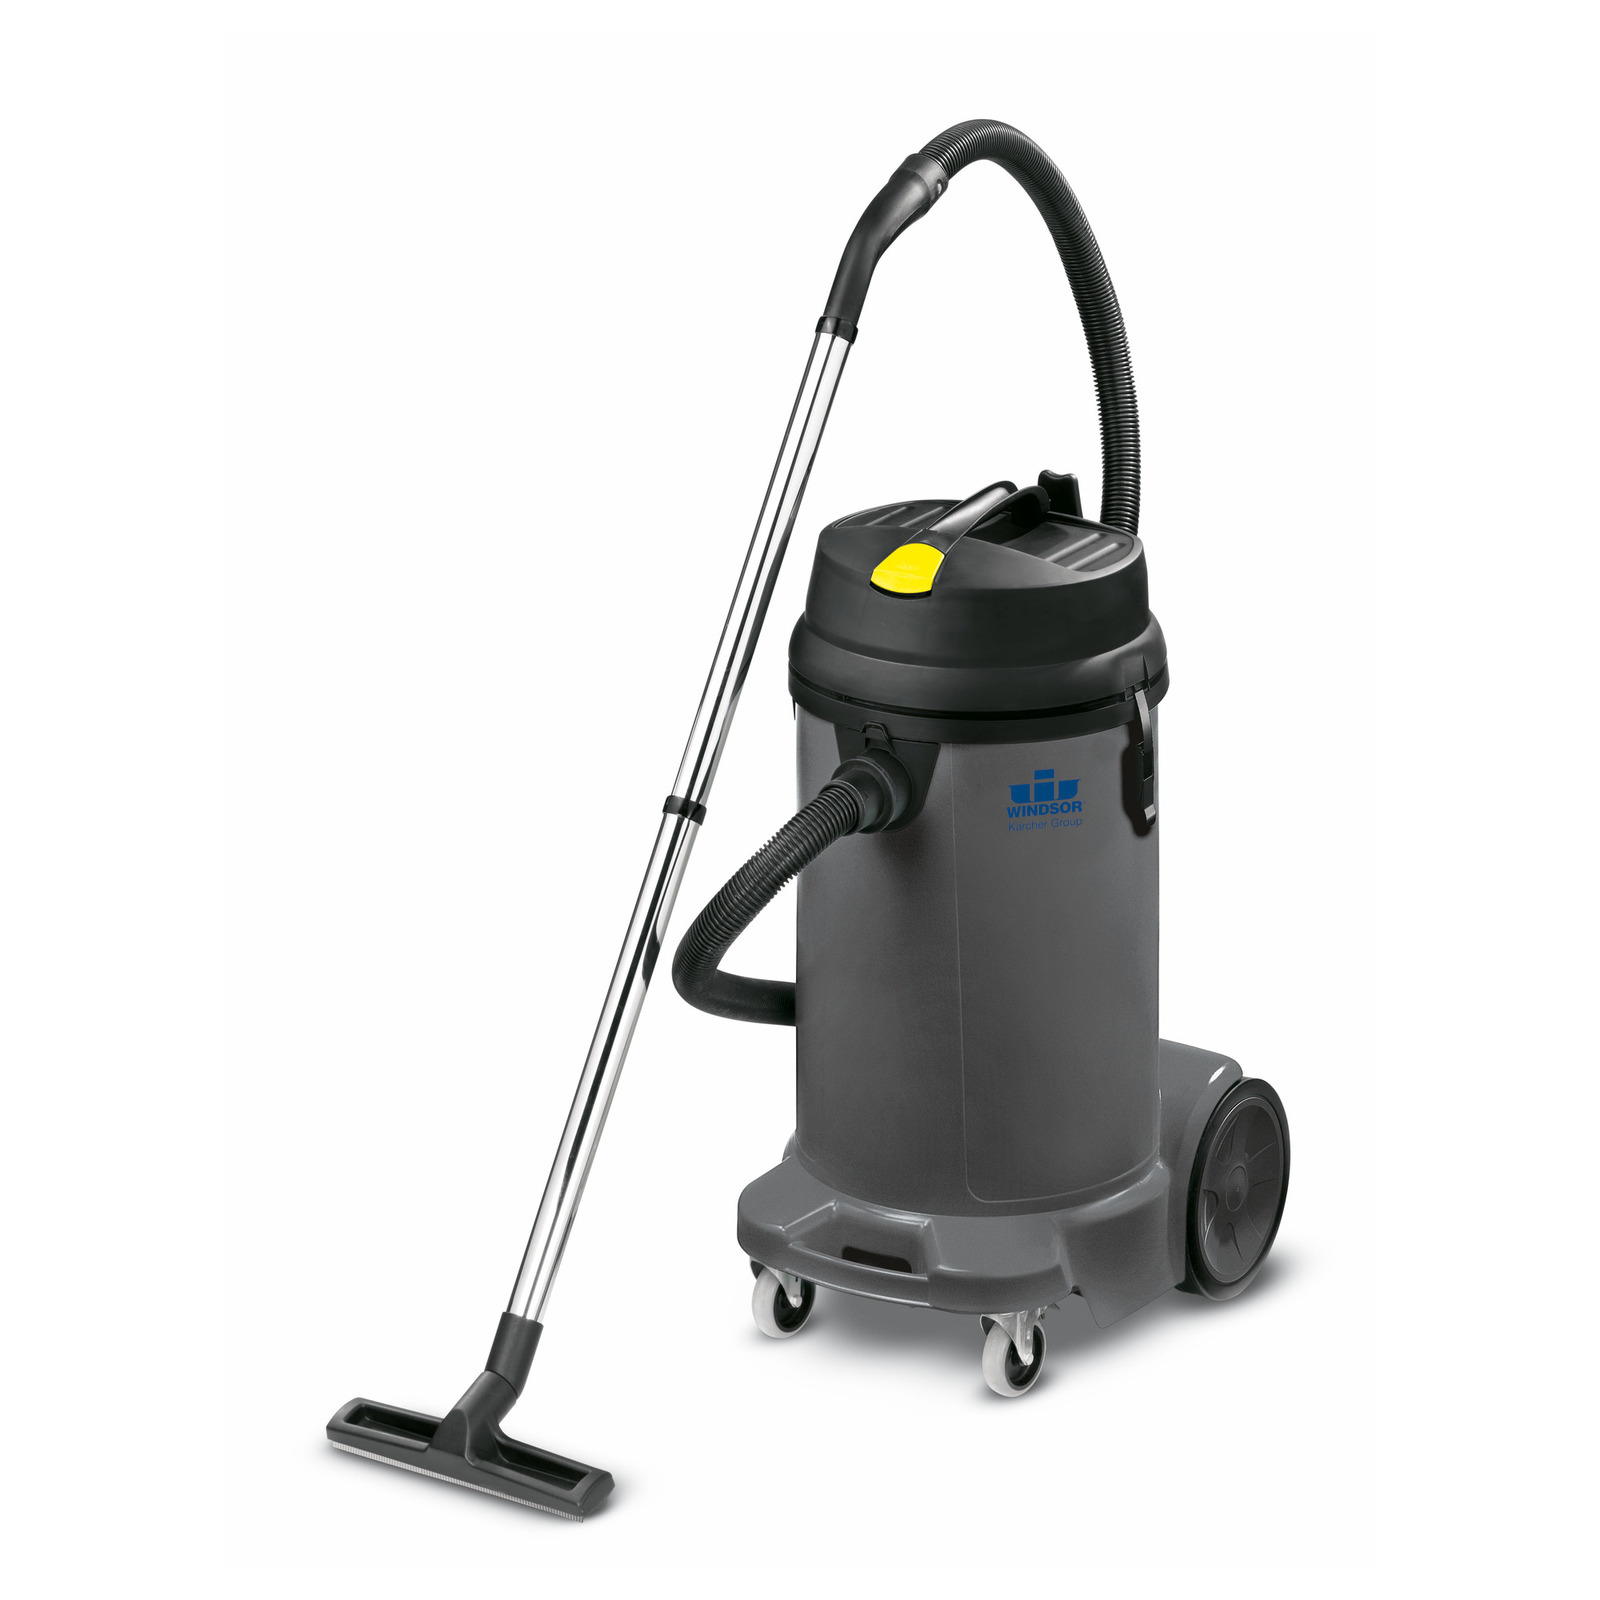 Windsor Recover 12 Gal Wet Dry Shop Vacuum 1.428-609.0 FREIGHT INCLUDED 120 Volts Karcher NT 48/1 CUL 1.428-623.0